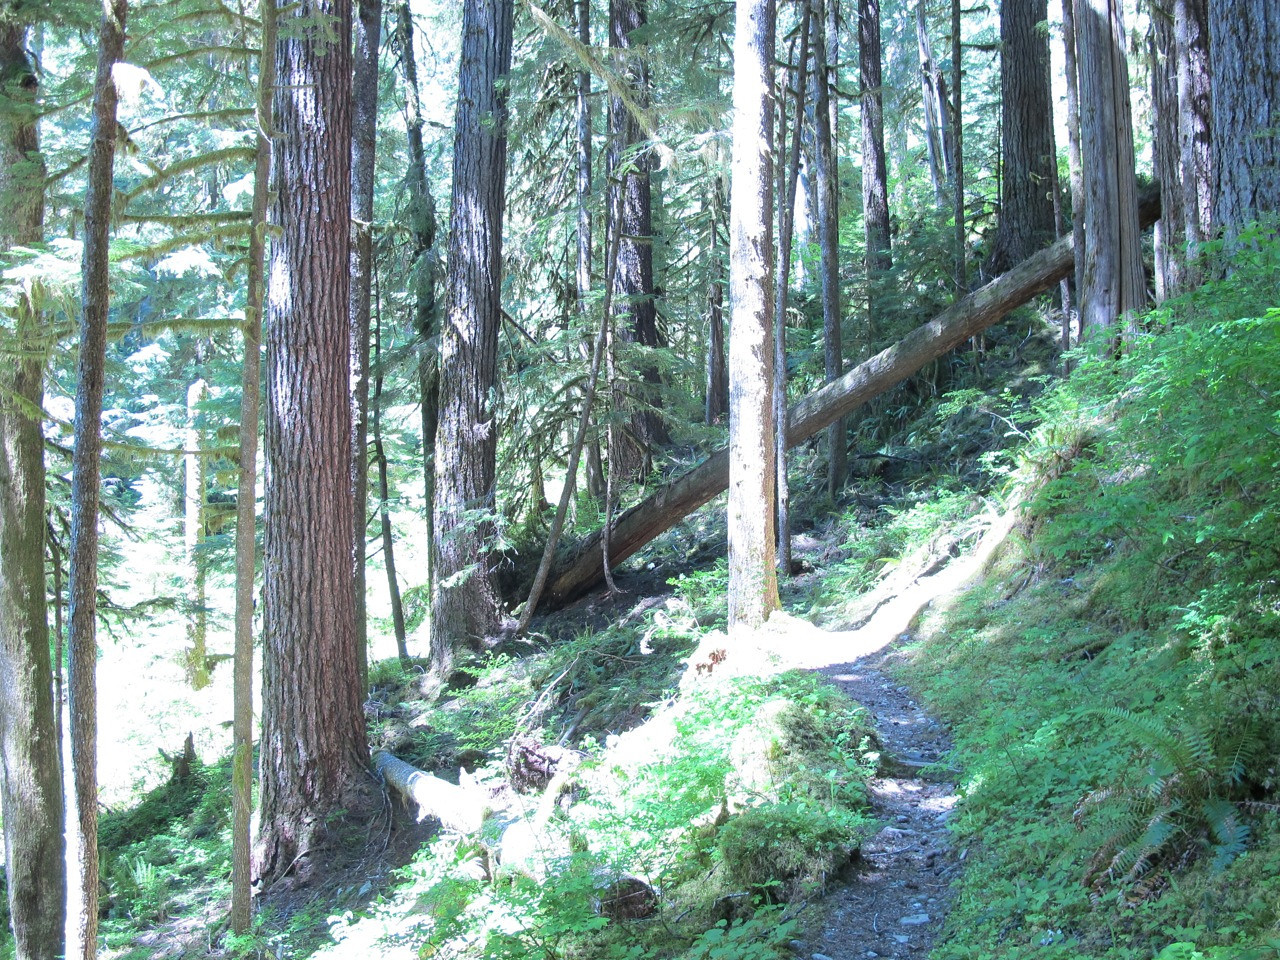 The trail passes under a downed tree.